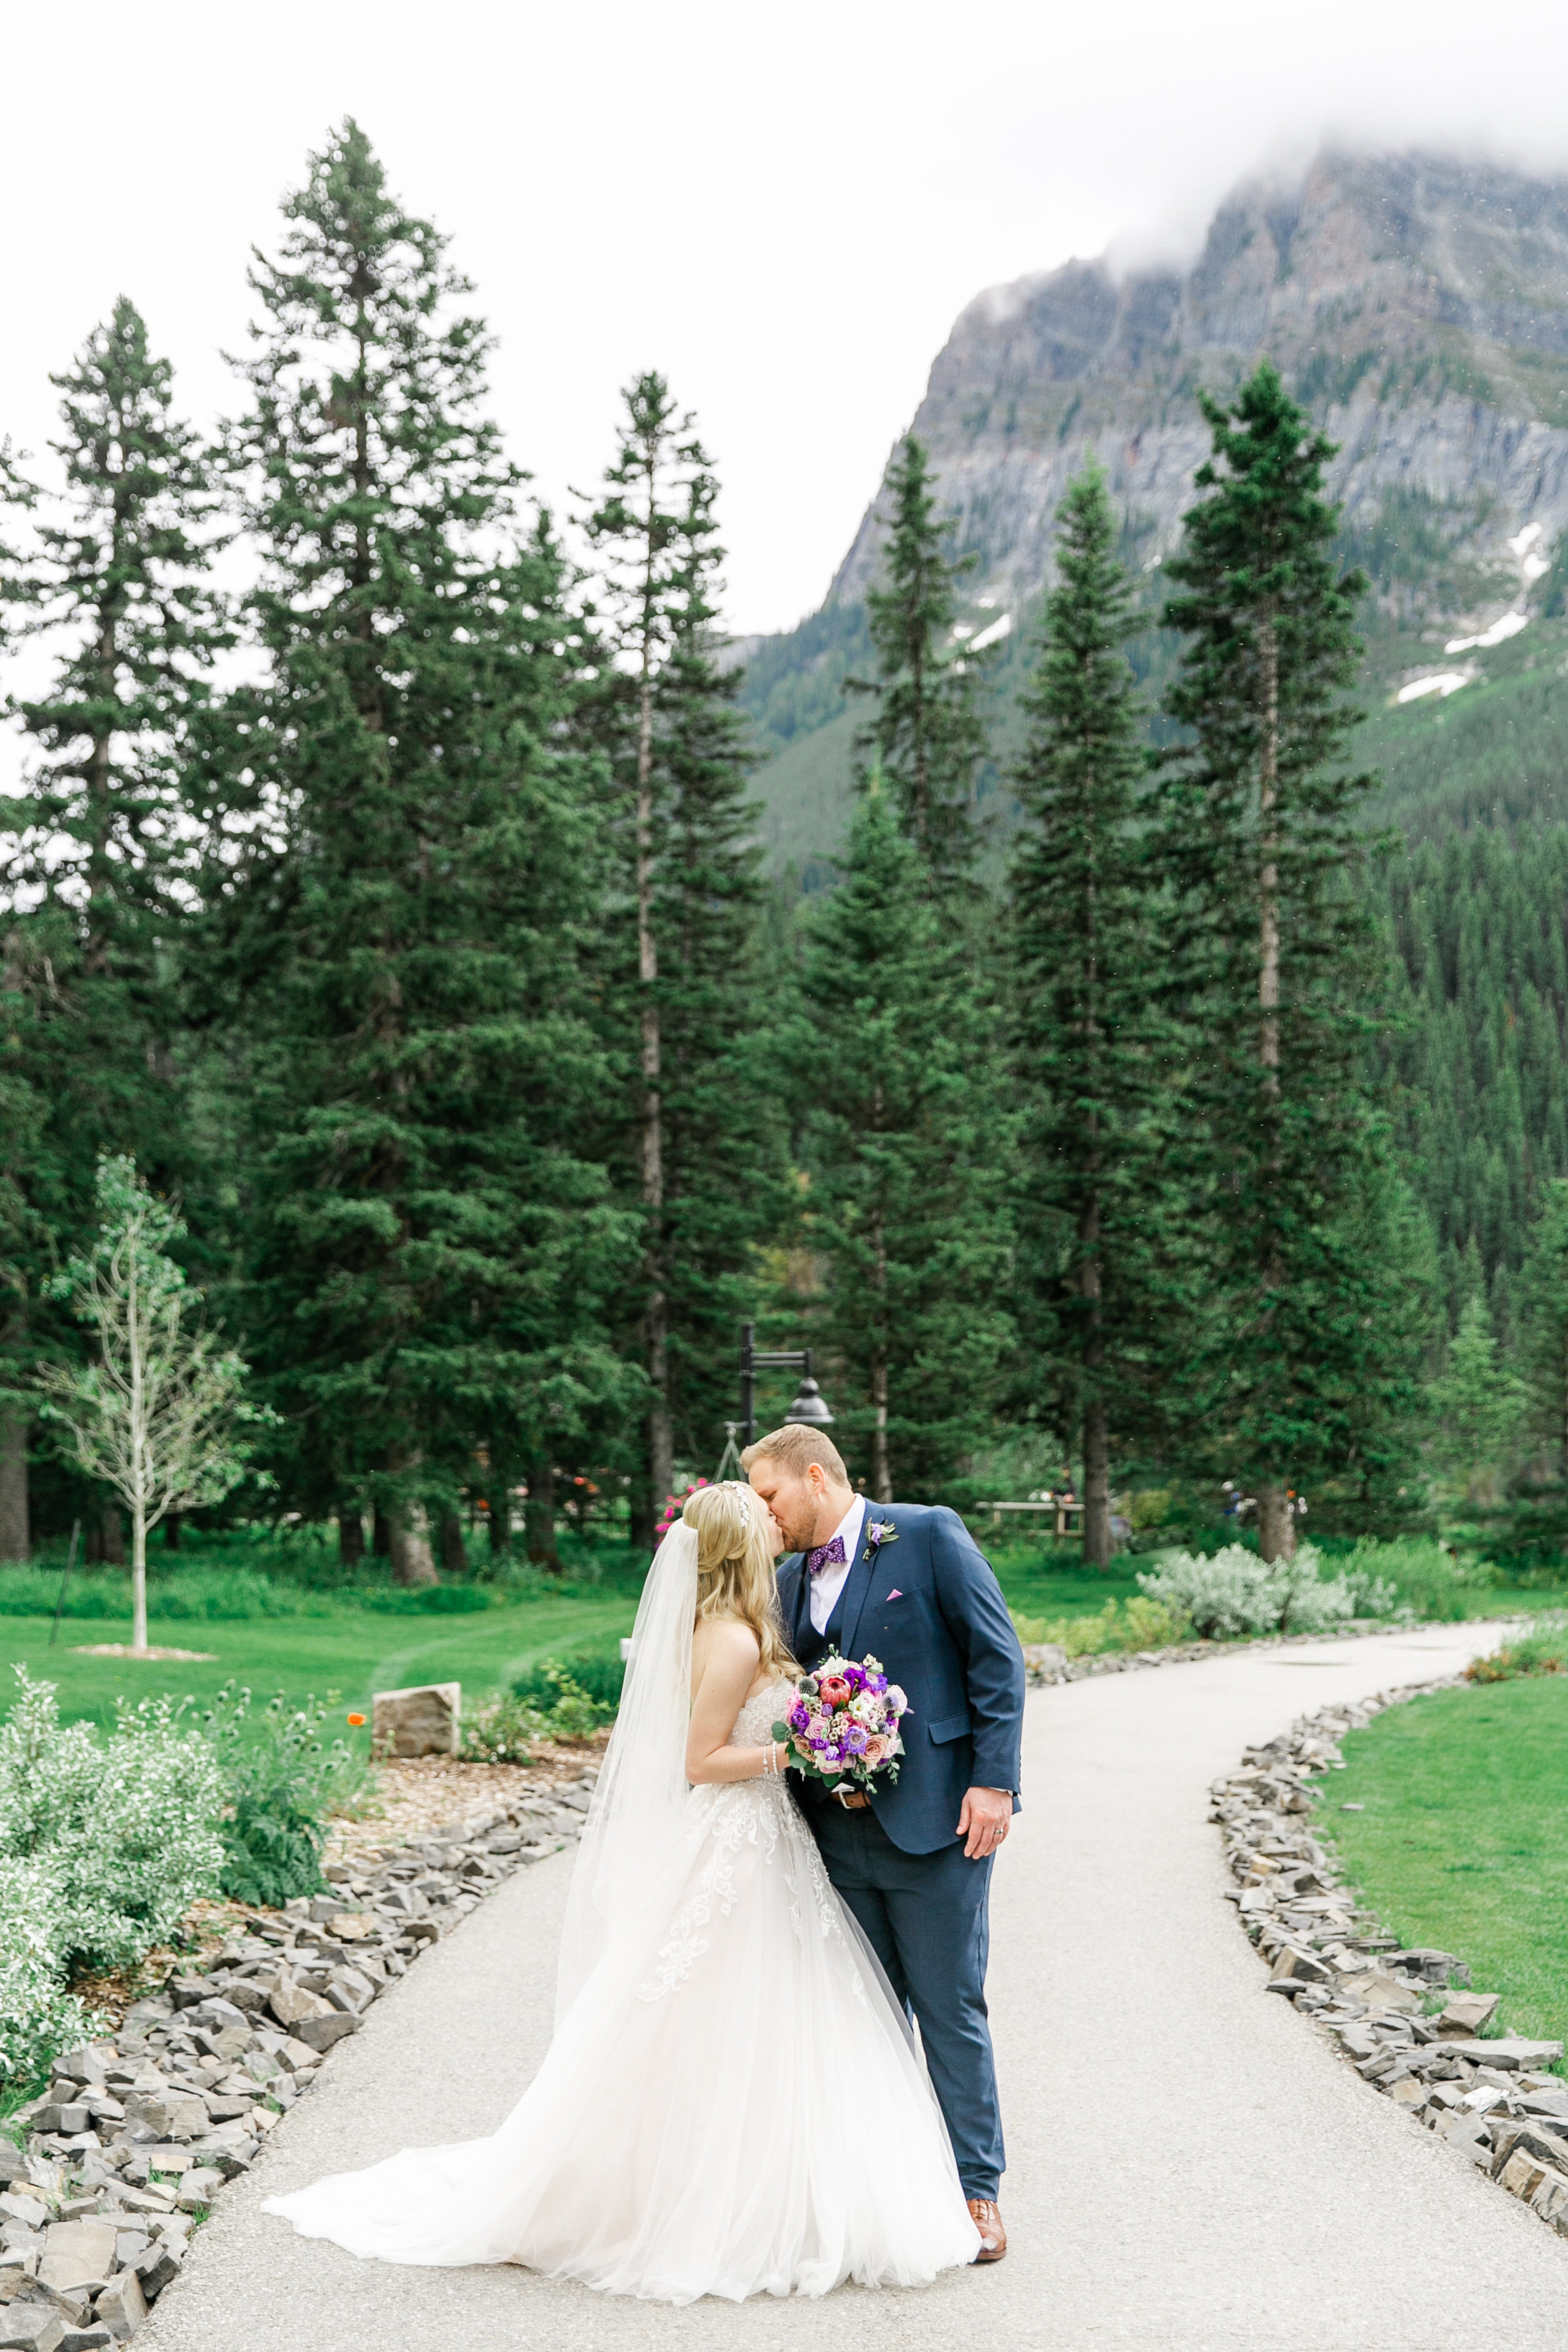 Karlie Colleen Photography - Fairmont Chateau Lake Louise Wedding - Banff Canada - Sara & Drew Forsberg-986